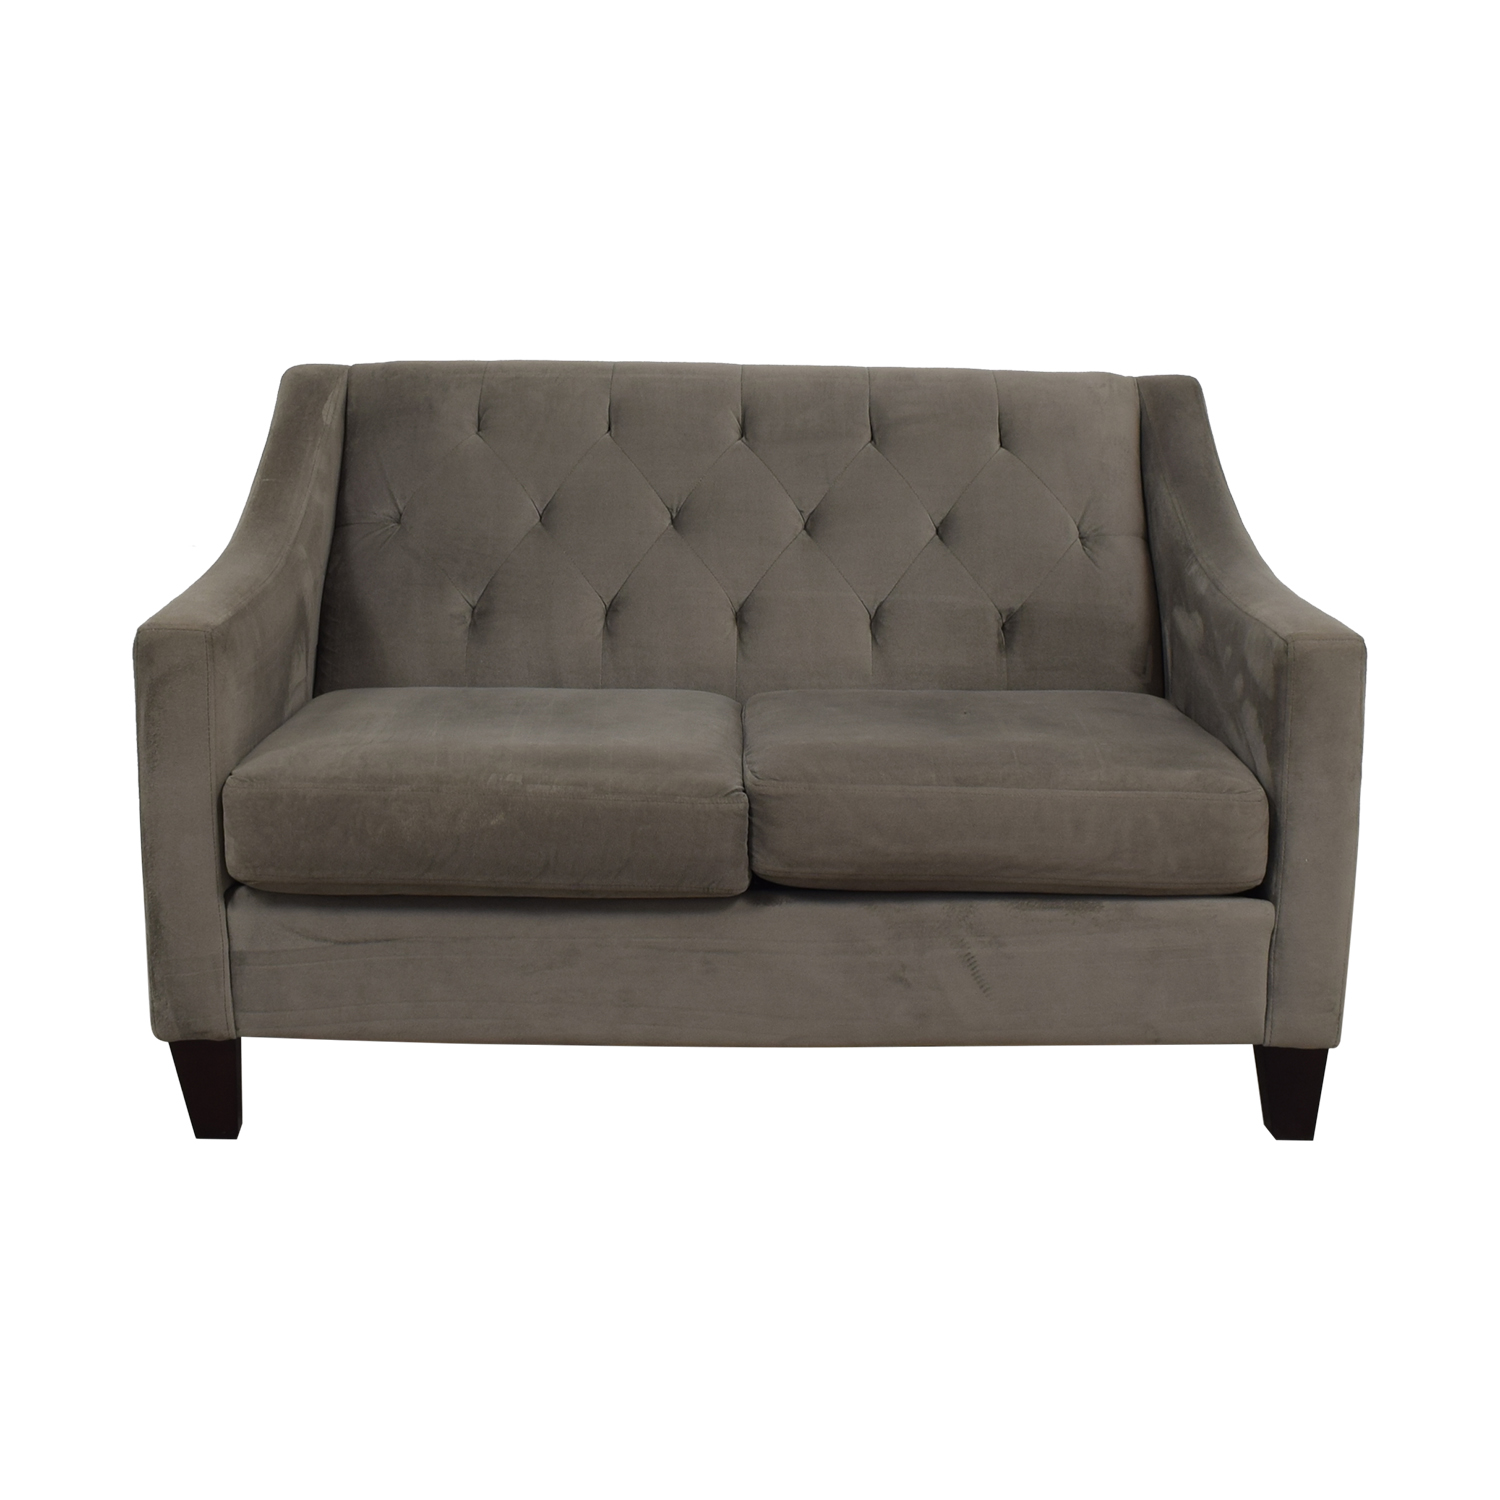 Macy's Macy's Grey Tufted Love Seat discount